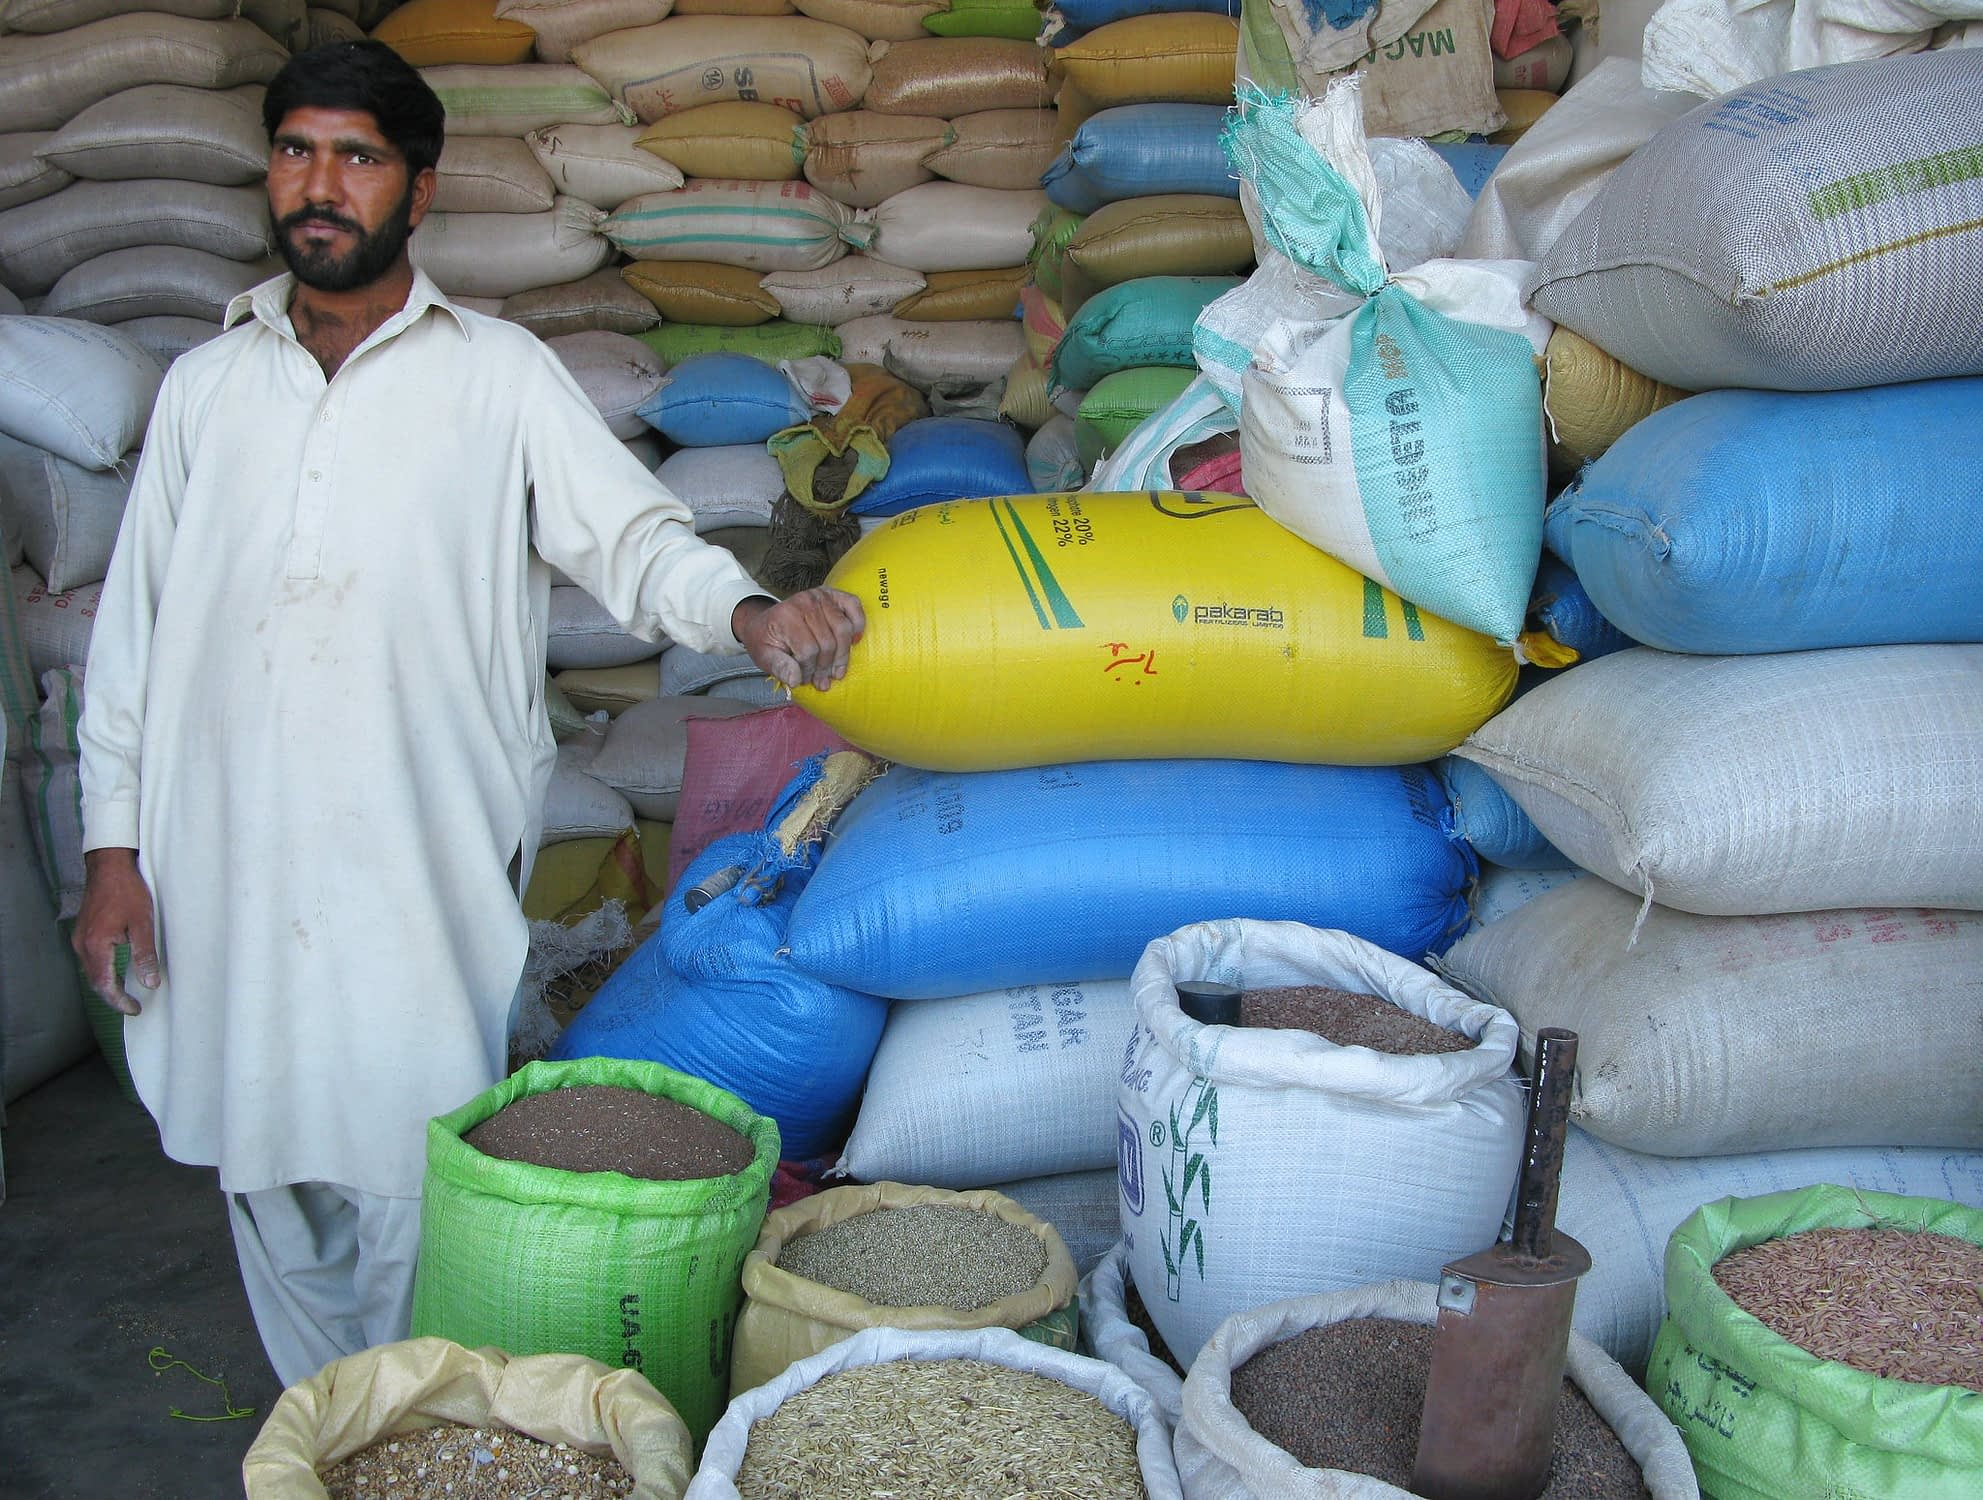 A seed vendor near Islamabad, Pakistan. For improved crop varieties to reach the farmers who need them, they usually must first reach local vendors, who form an essential link in the chain between researchers, seed producers and farmers. (Photo: M. DeFreese/CIMMYT)